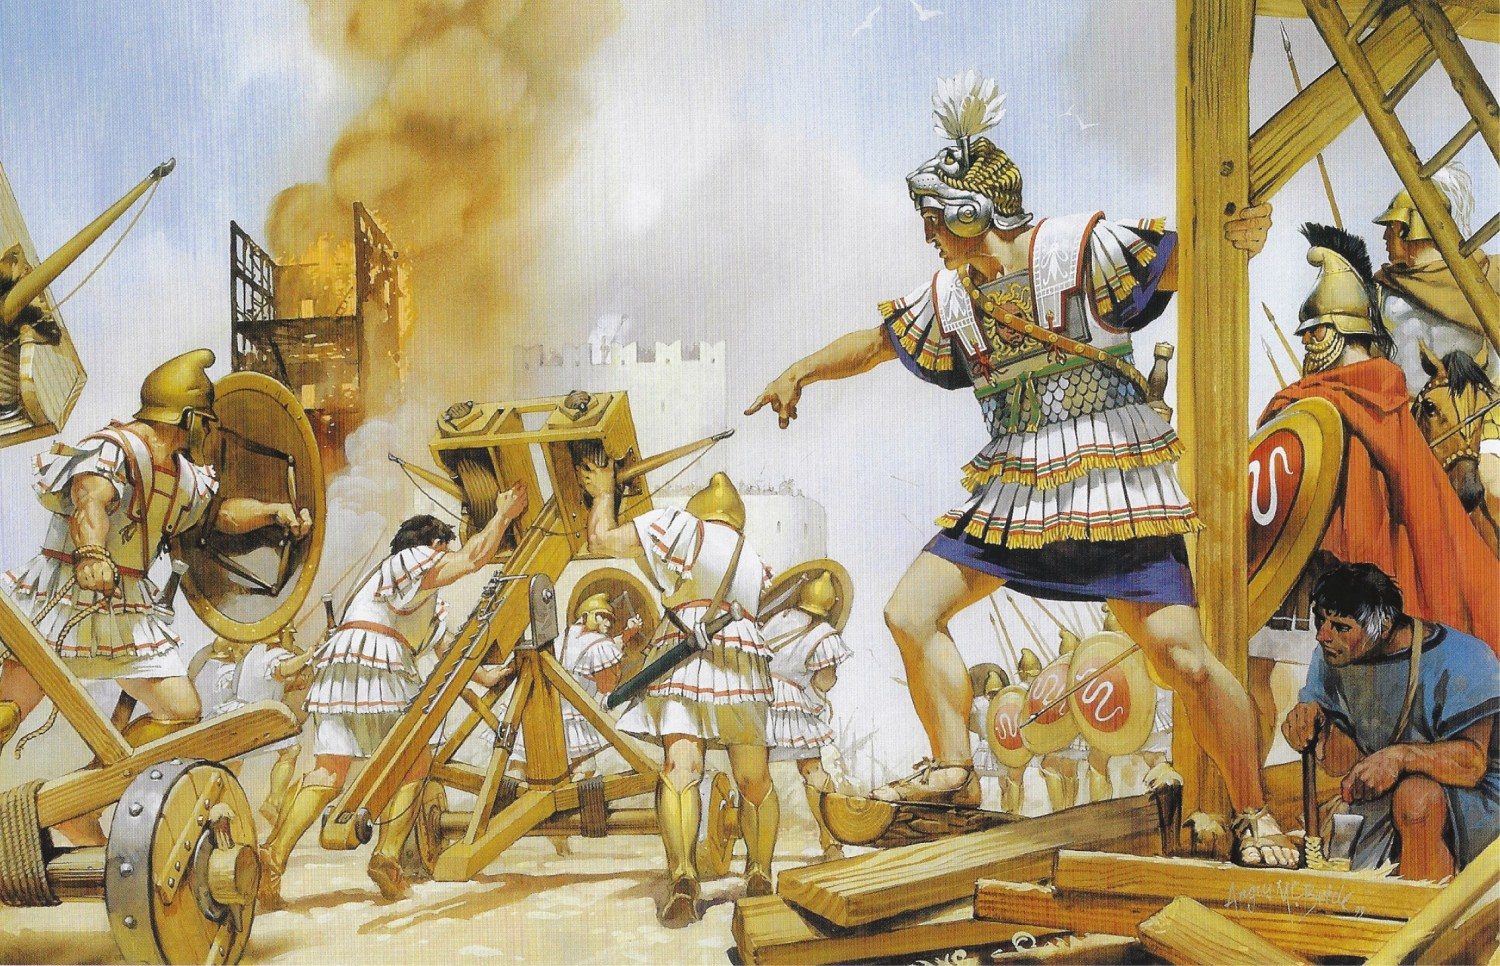 BELOW Alexander at the siege of Tyre, a long and gruelling military operation that demonstrated both his mastery of war and his primeval brutality.